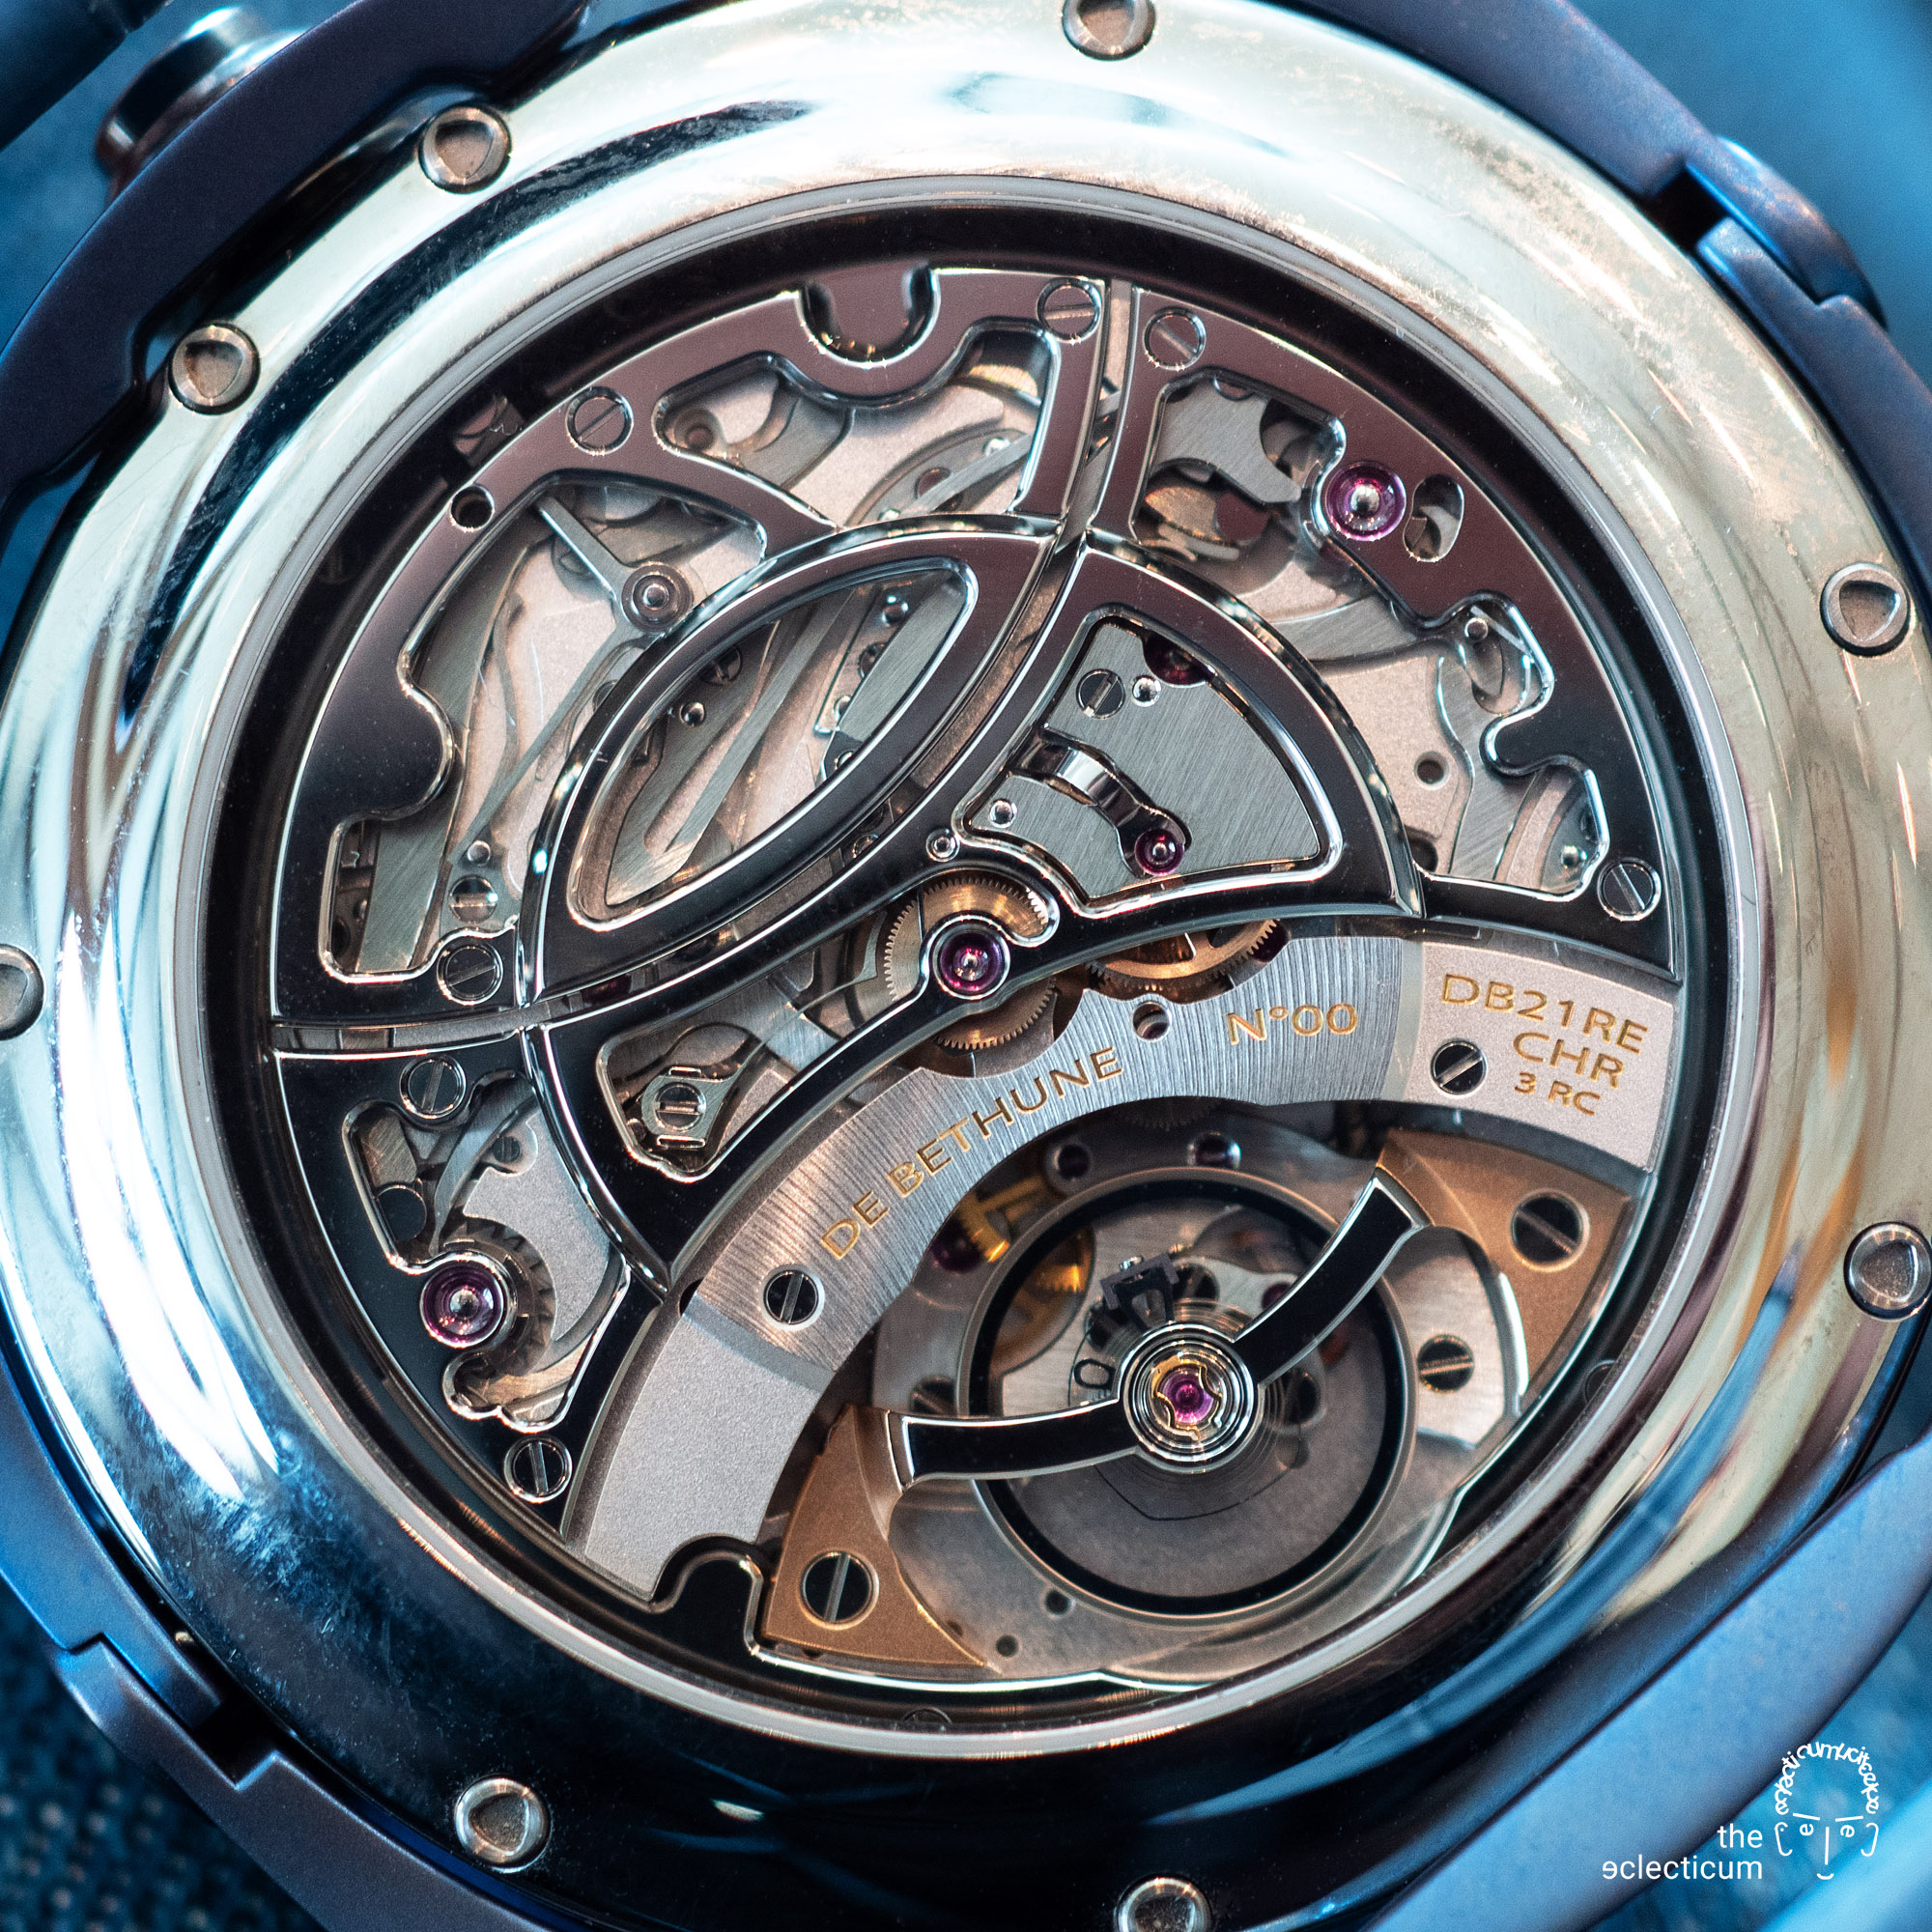 De Bethune DB21RE MaxiChrono Reedition chronograph central stack manufacture movement Cal. DB2030